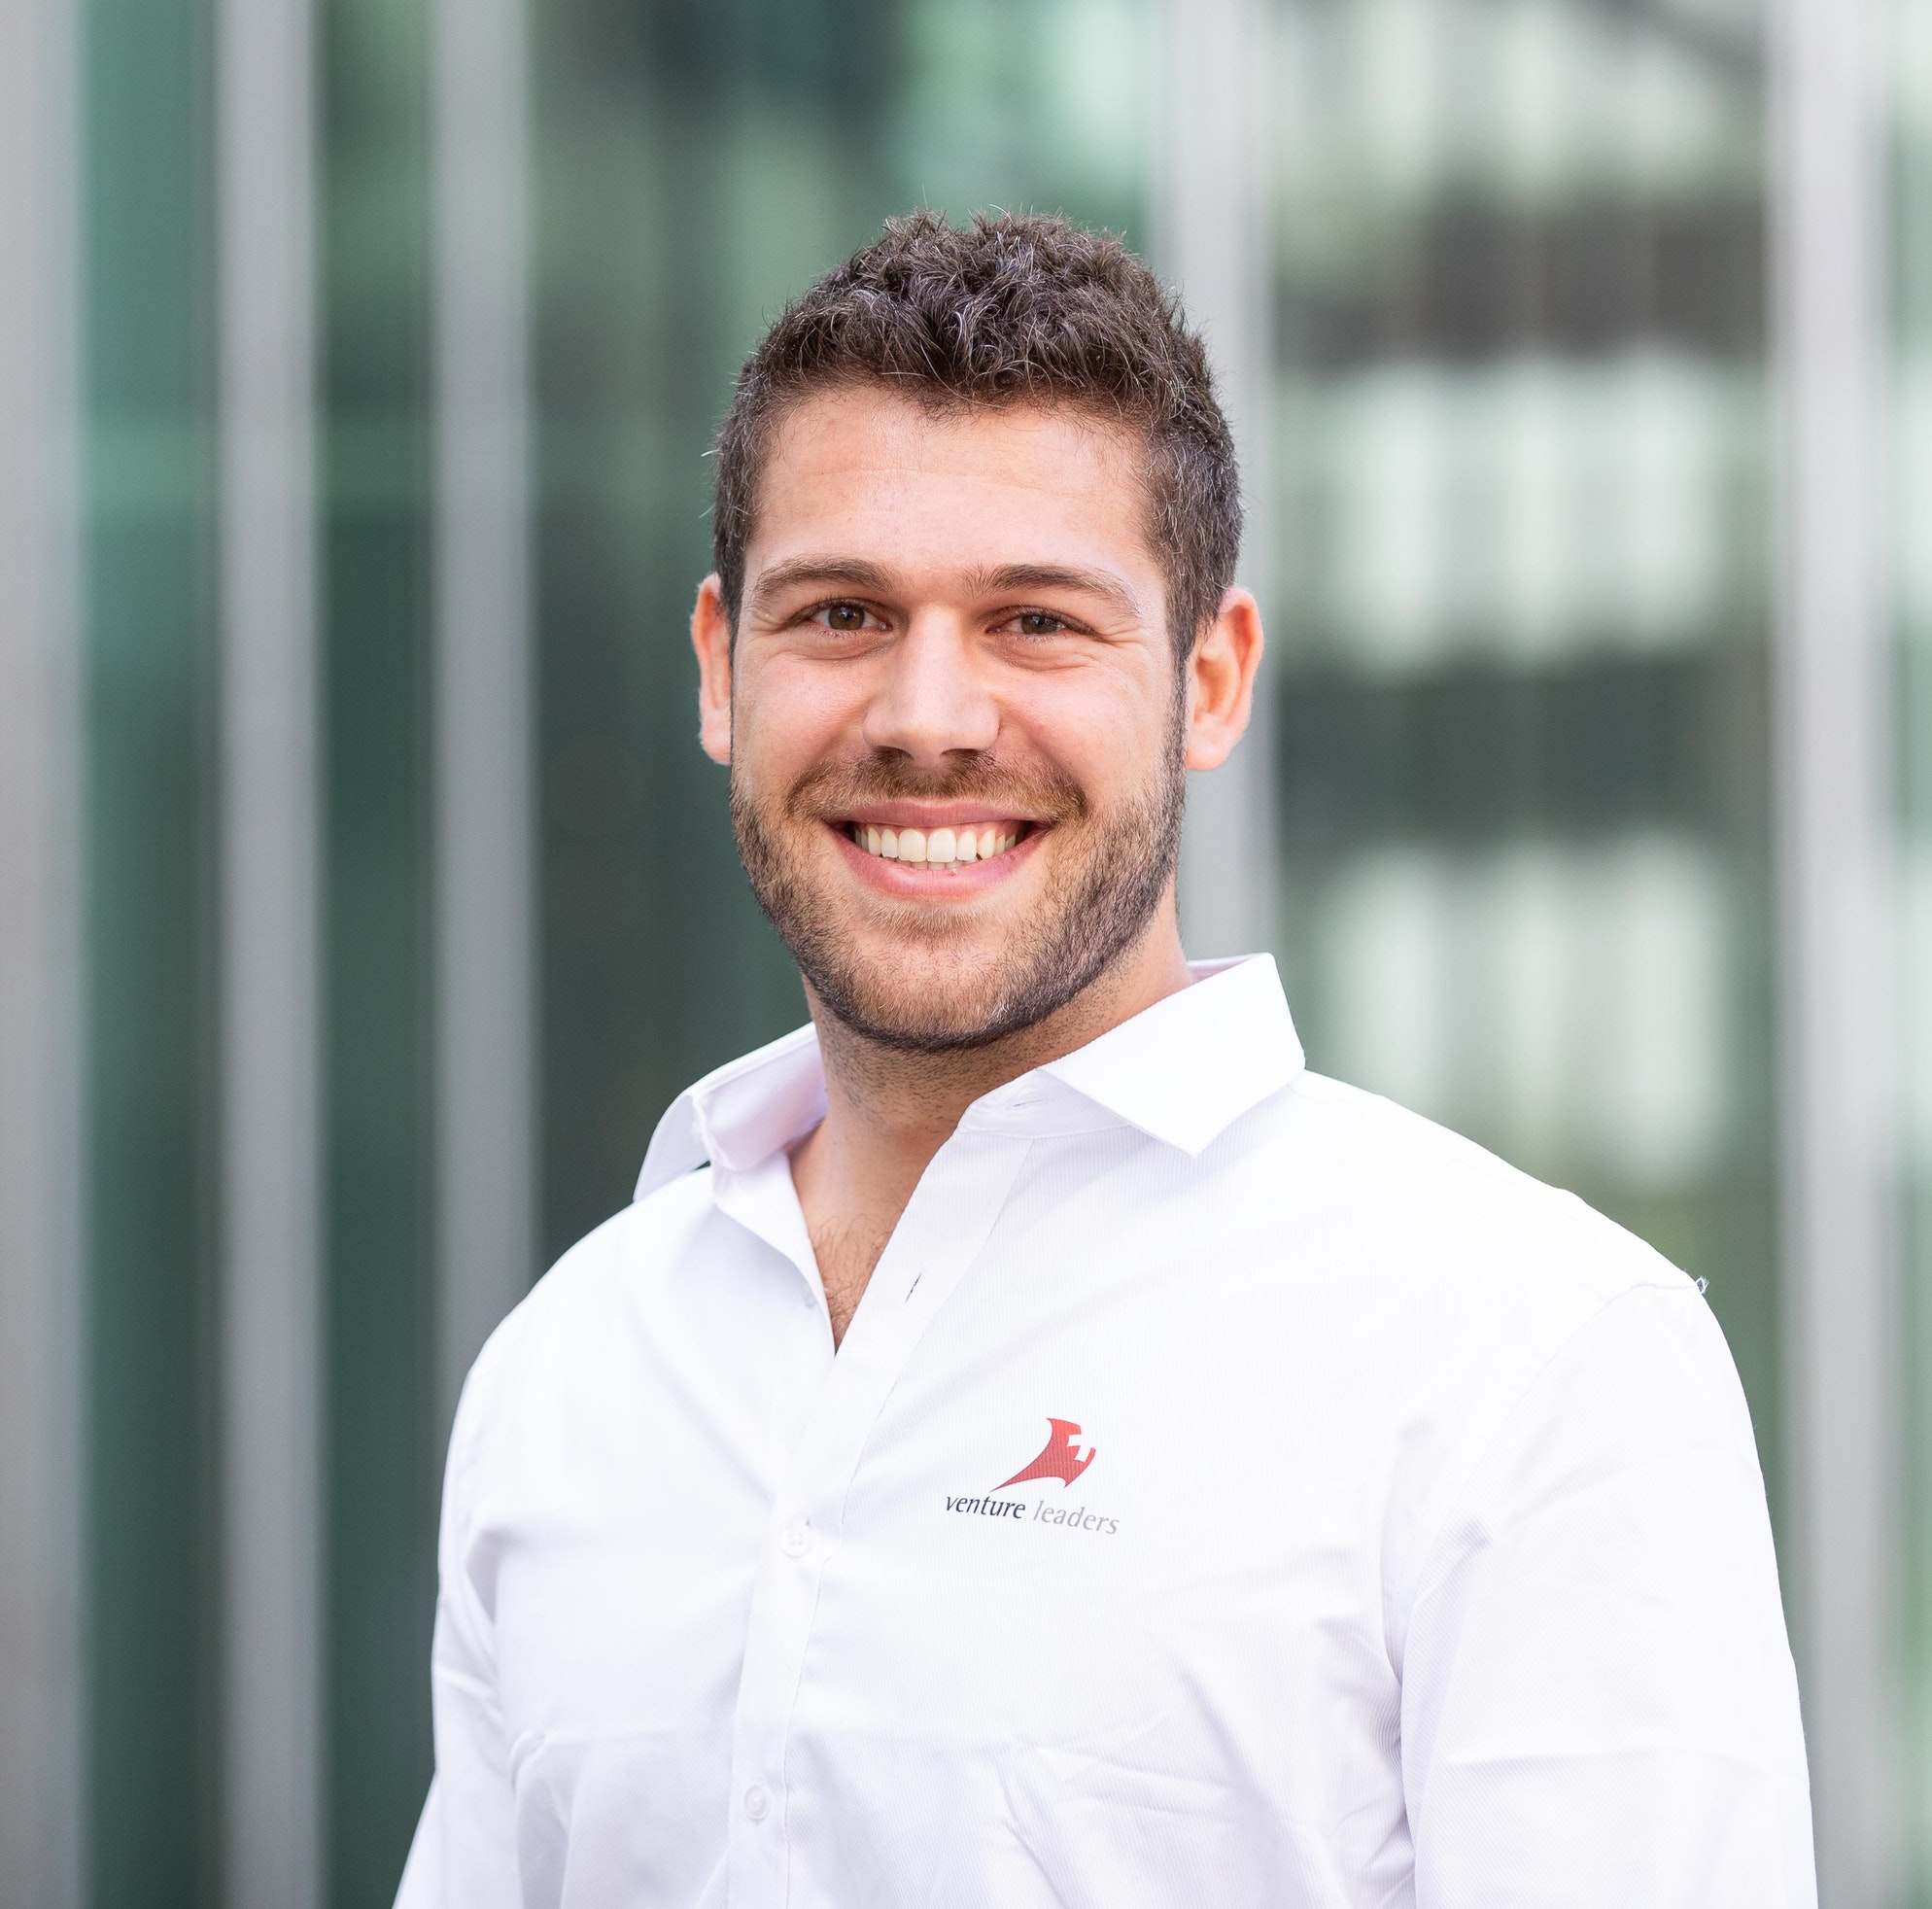 Meet Kemiex COO Oriol Saludes and find out how he travels to Spain by opening the fridge